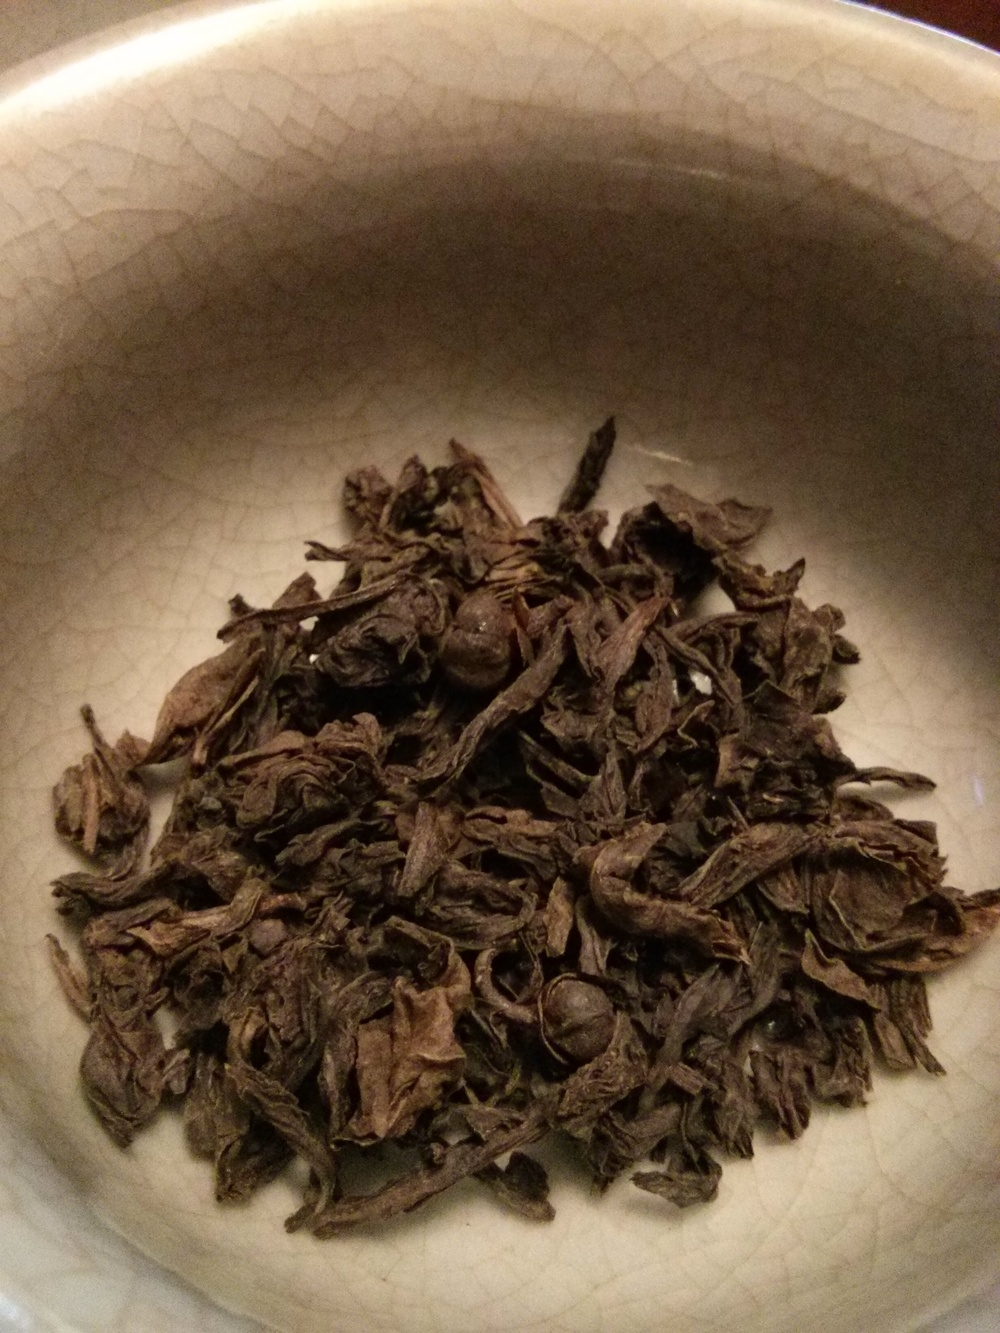 The loose tea smelled very similar to the Da Hong Pao I recently had. It's a roasted tea, so it will dominate the smell of the loose tea.